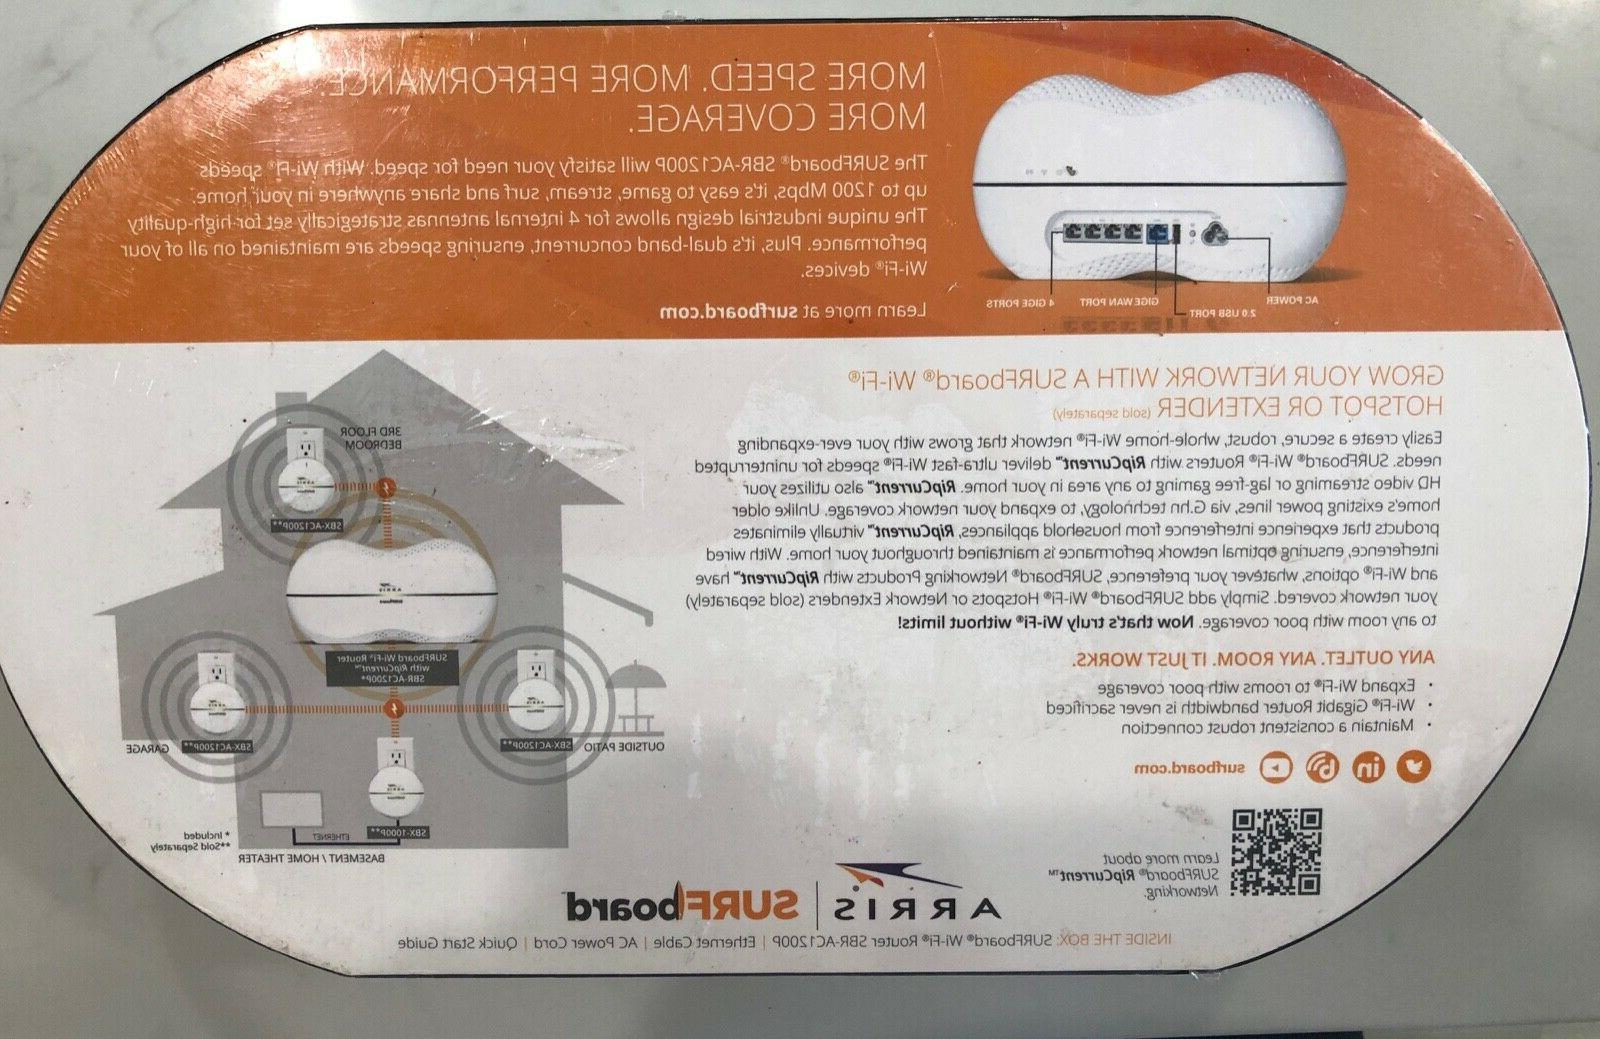 ARRIS Wi-Fi Router with